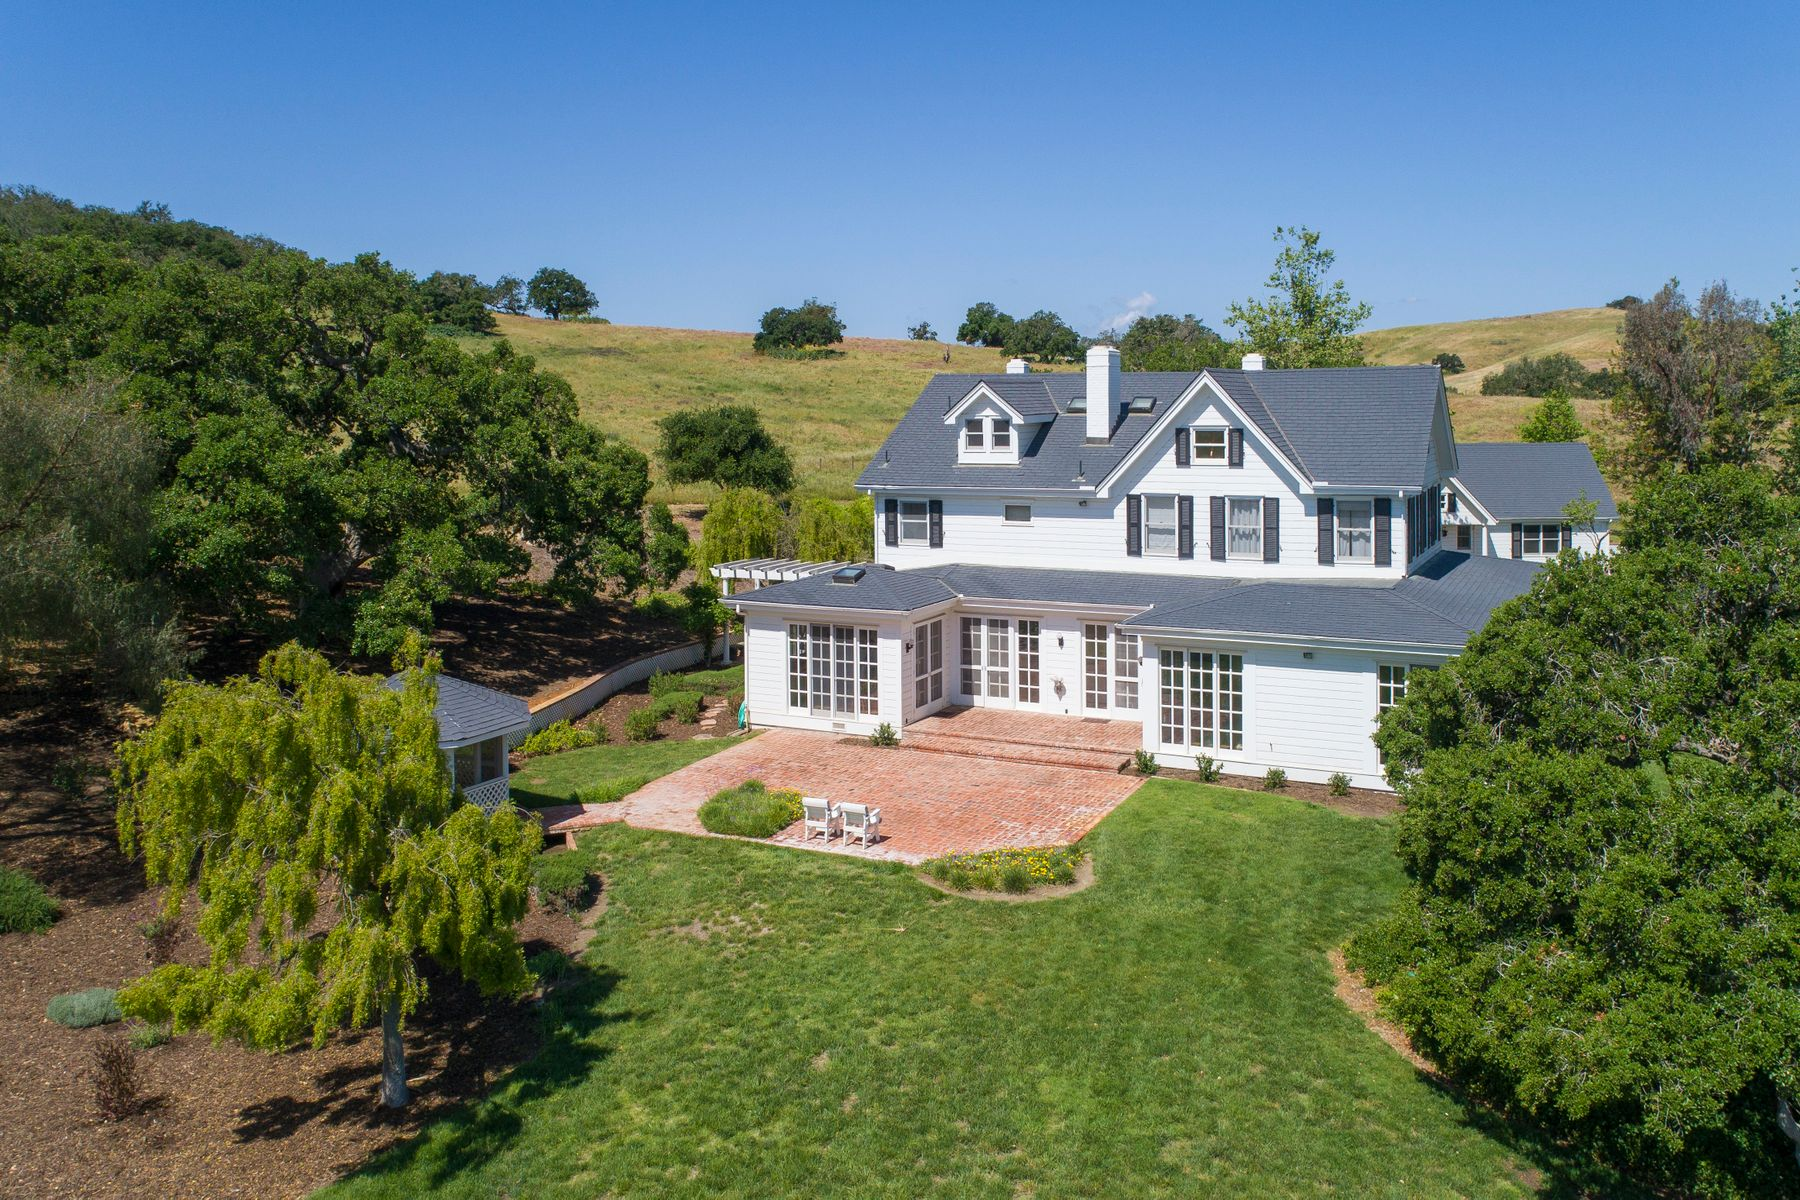 Vineyard Real Estate 为 销售 在 Foxen Creek Ranch 8251 Foxen Canyon Road 洛斯阿拉莫斯, 加利福尼亚州 93440 美国